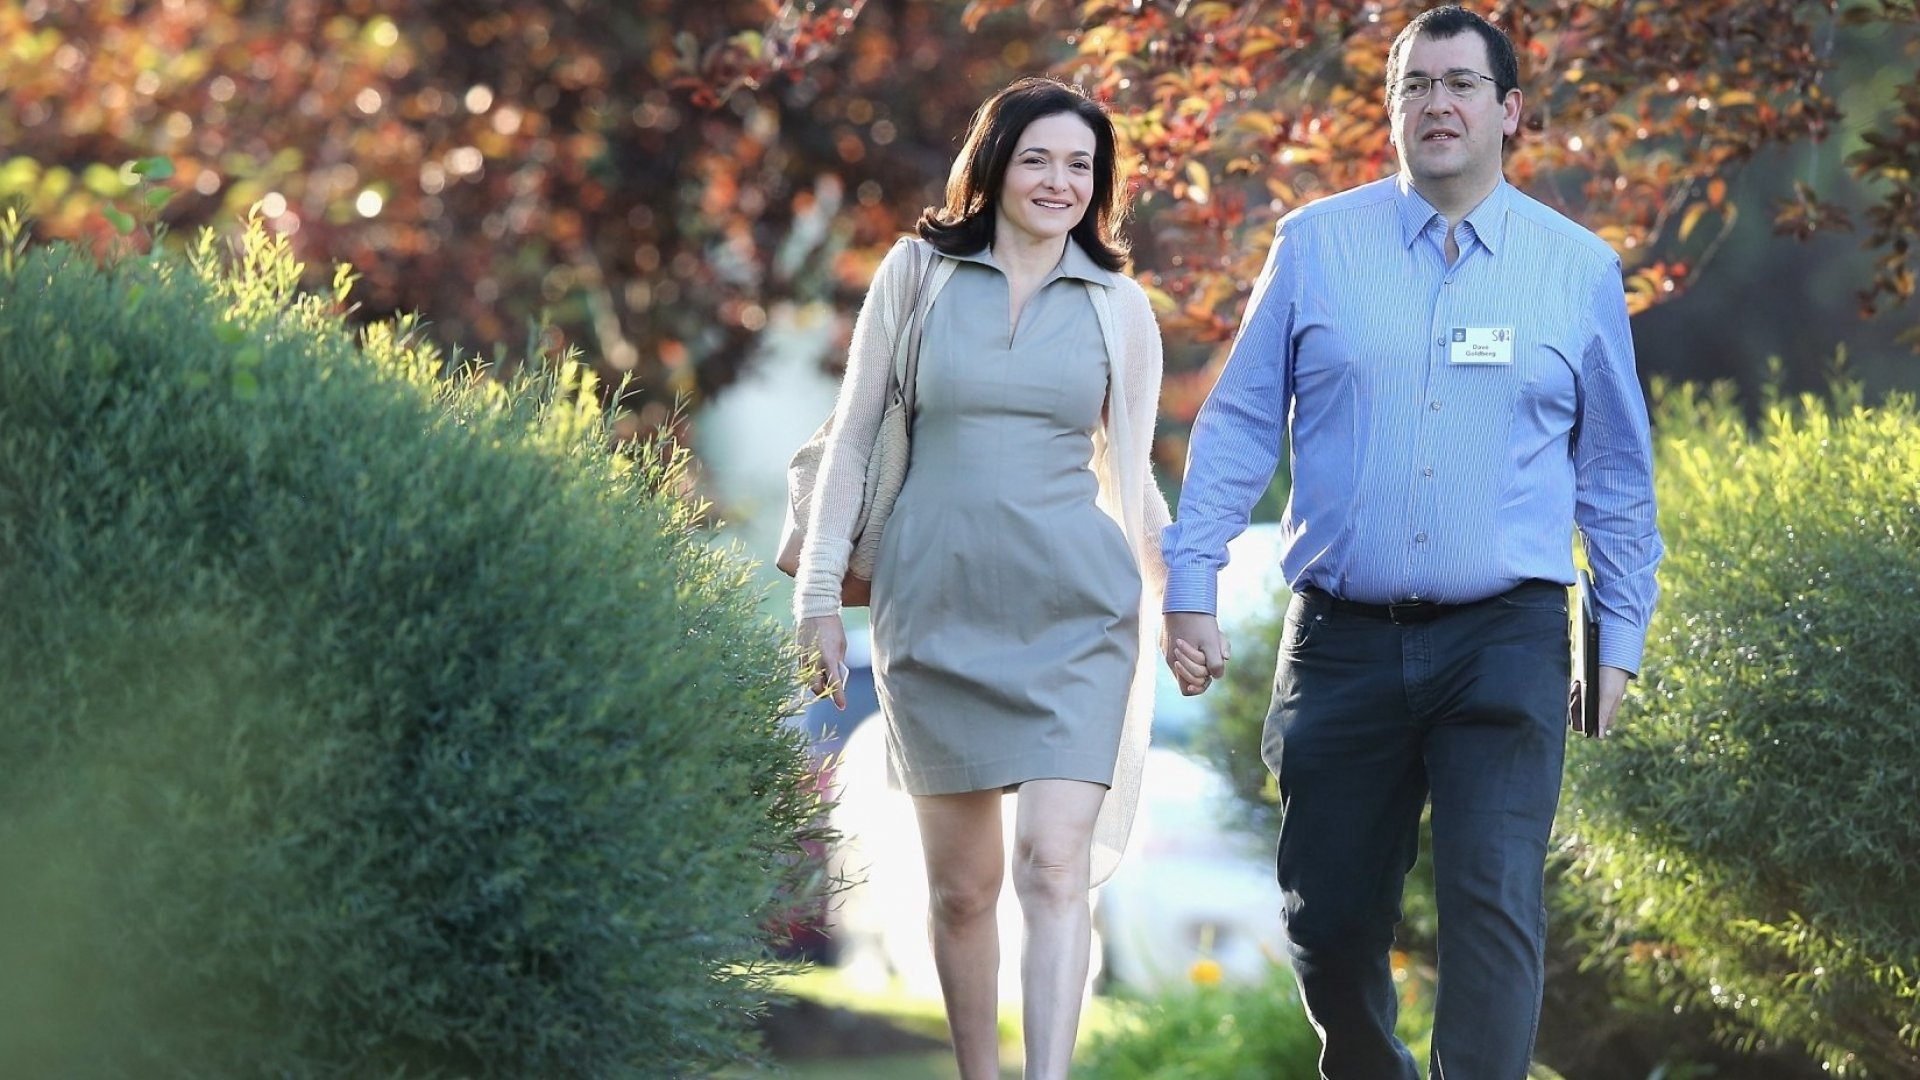 Dave Goldberg, Silicon Valley Entrepreneur and Husband of Sheryl Sandberg, Dies